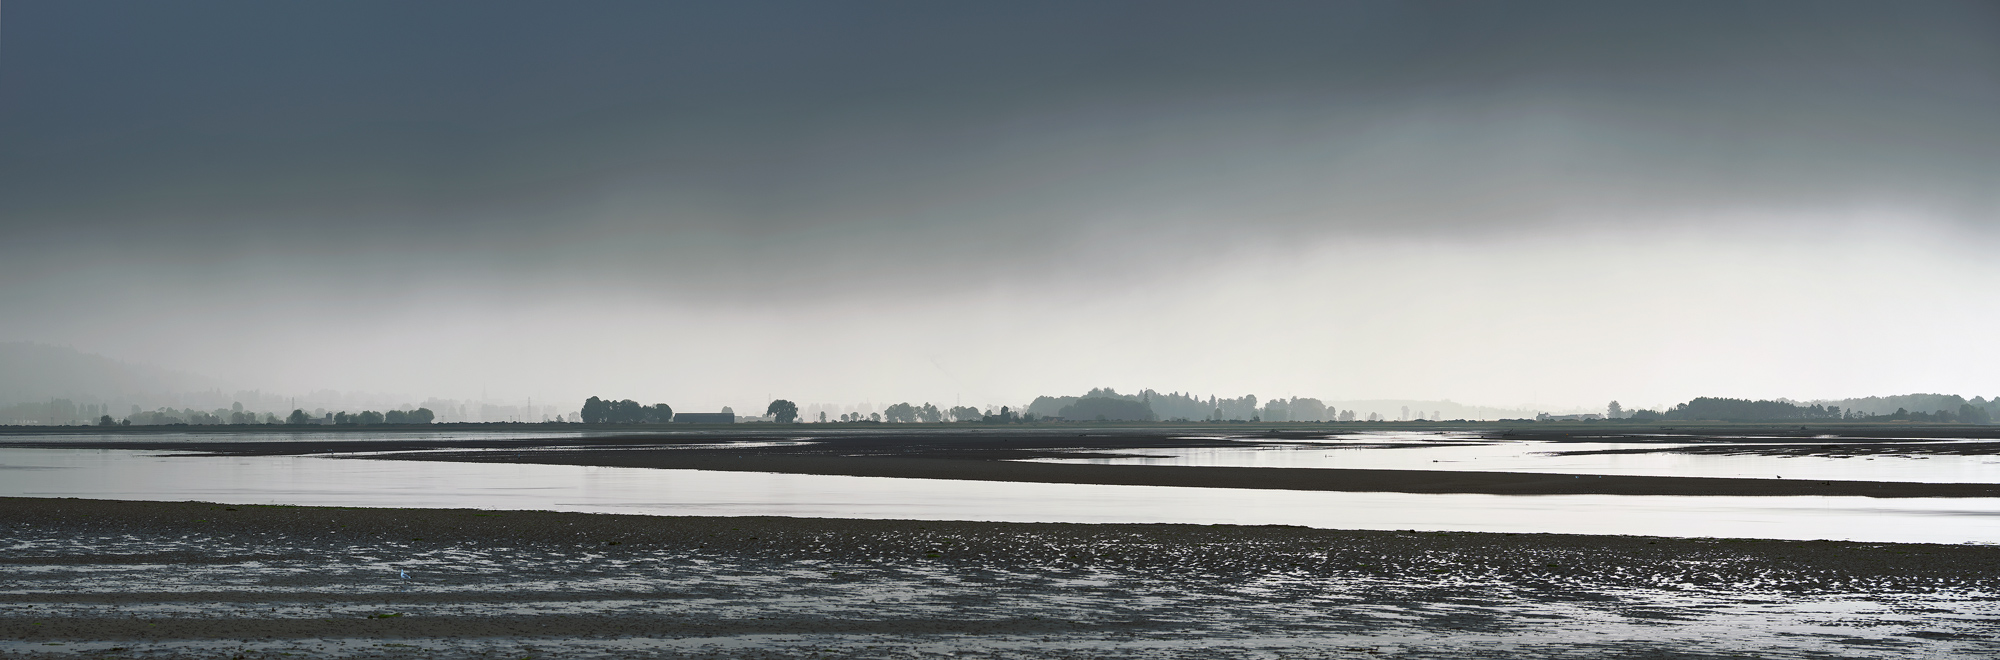 A thunderstorm broods on the horizon over Forres across the sand flats of the Findhorn estuary.